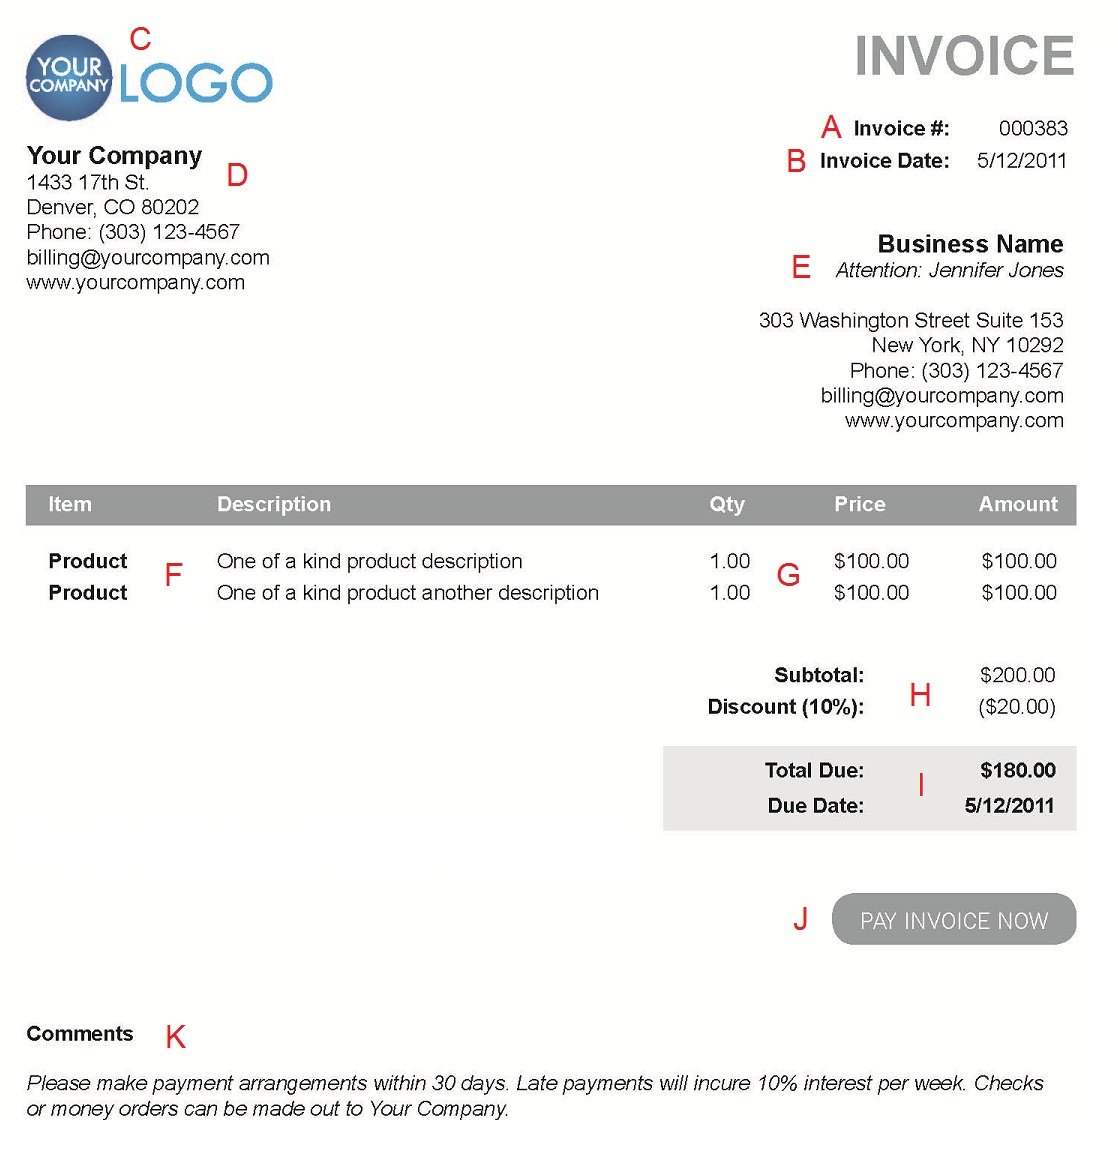 Pigbrotherus  Surprising The  Different Sections Of An Electronic Payment Invoice With Magnificent A  With Charming Bill Of Receipt Also Chili Receipts In Addition Receiption Desk And Bpa Receipt Paper As Well As Non Profit Donation Receipt Letter Additionally Deposit Receipt Form From Paysimplecom With Pigbrotherus  Magnificent The  Different Sections Of An Electronic Payment Invoice With Charming A  And Surprising Bill Of Receipt Also Chili Receipts In Addition Receiption Desk From Paysimplecom